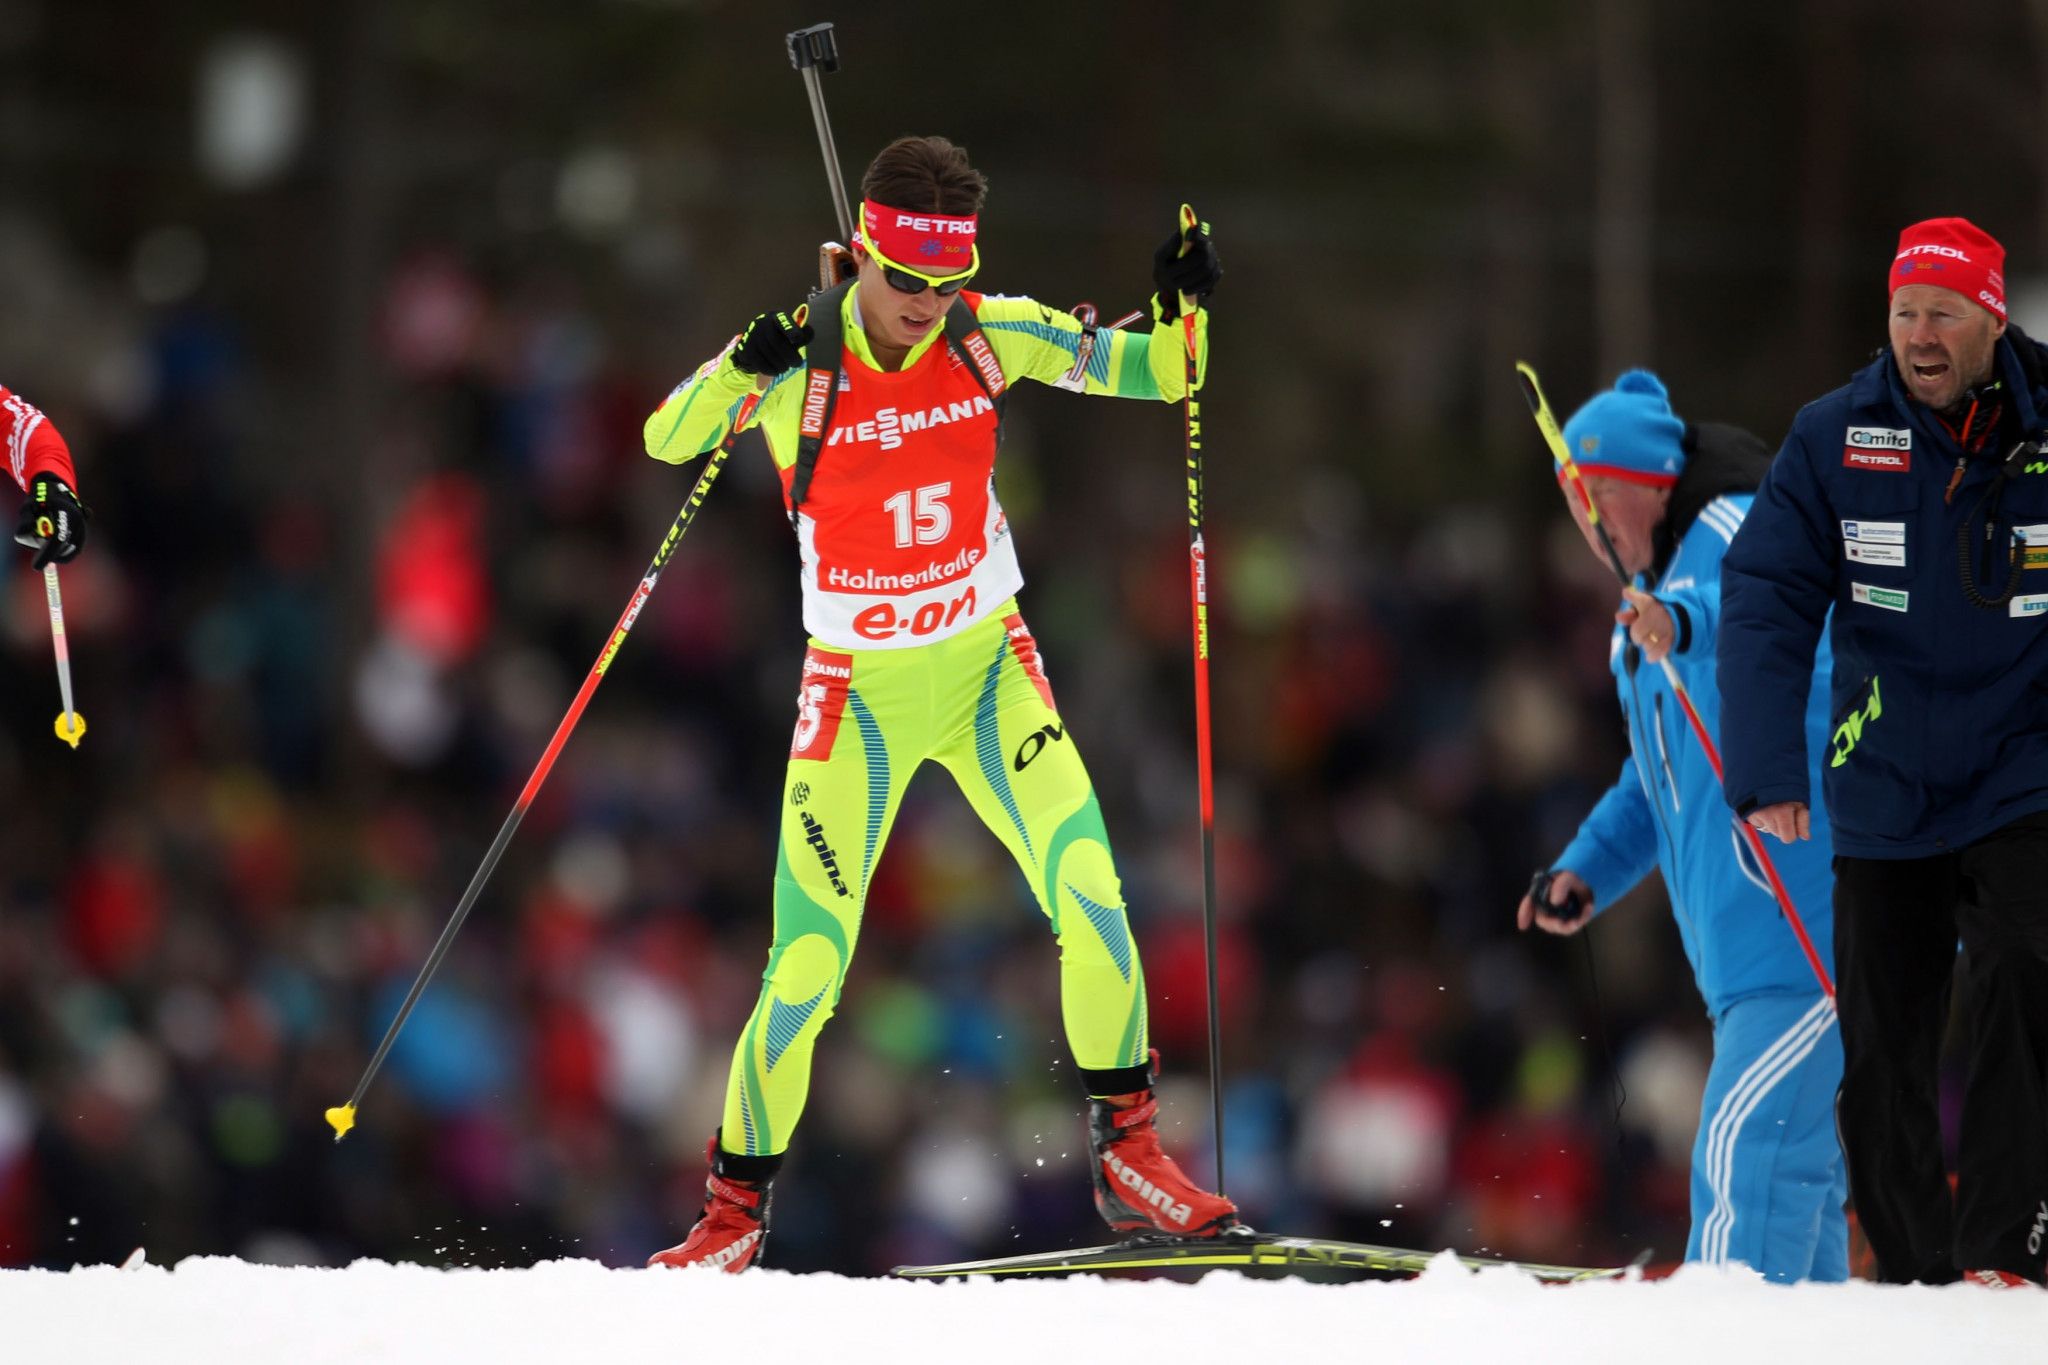 Teja Gregorin has been disqualified from the Vancouver 2010 Winter Olympics ©Getty Images